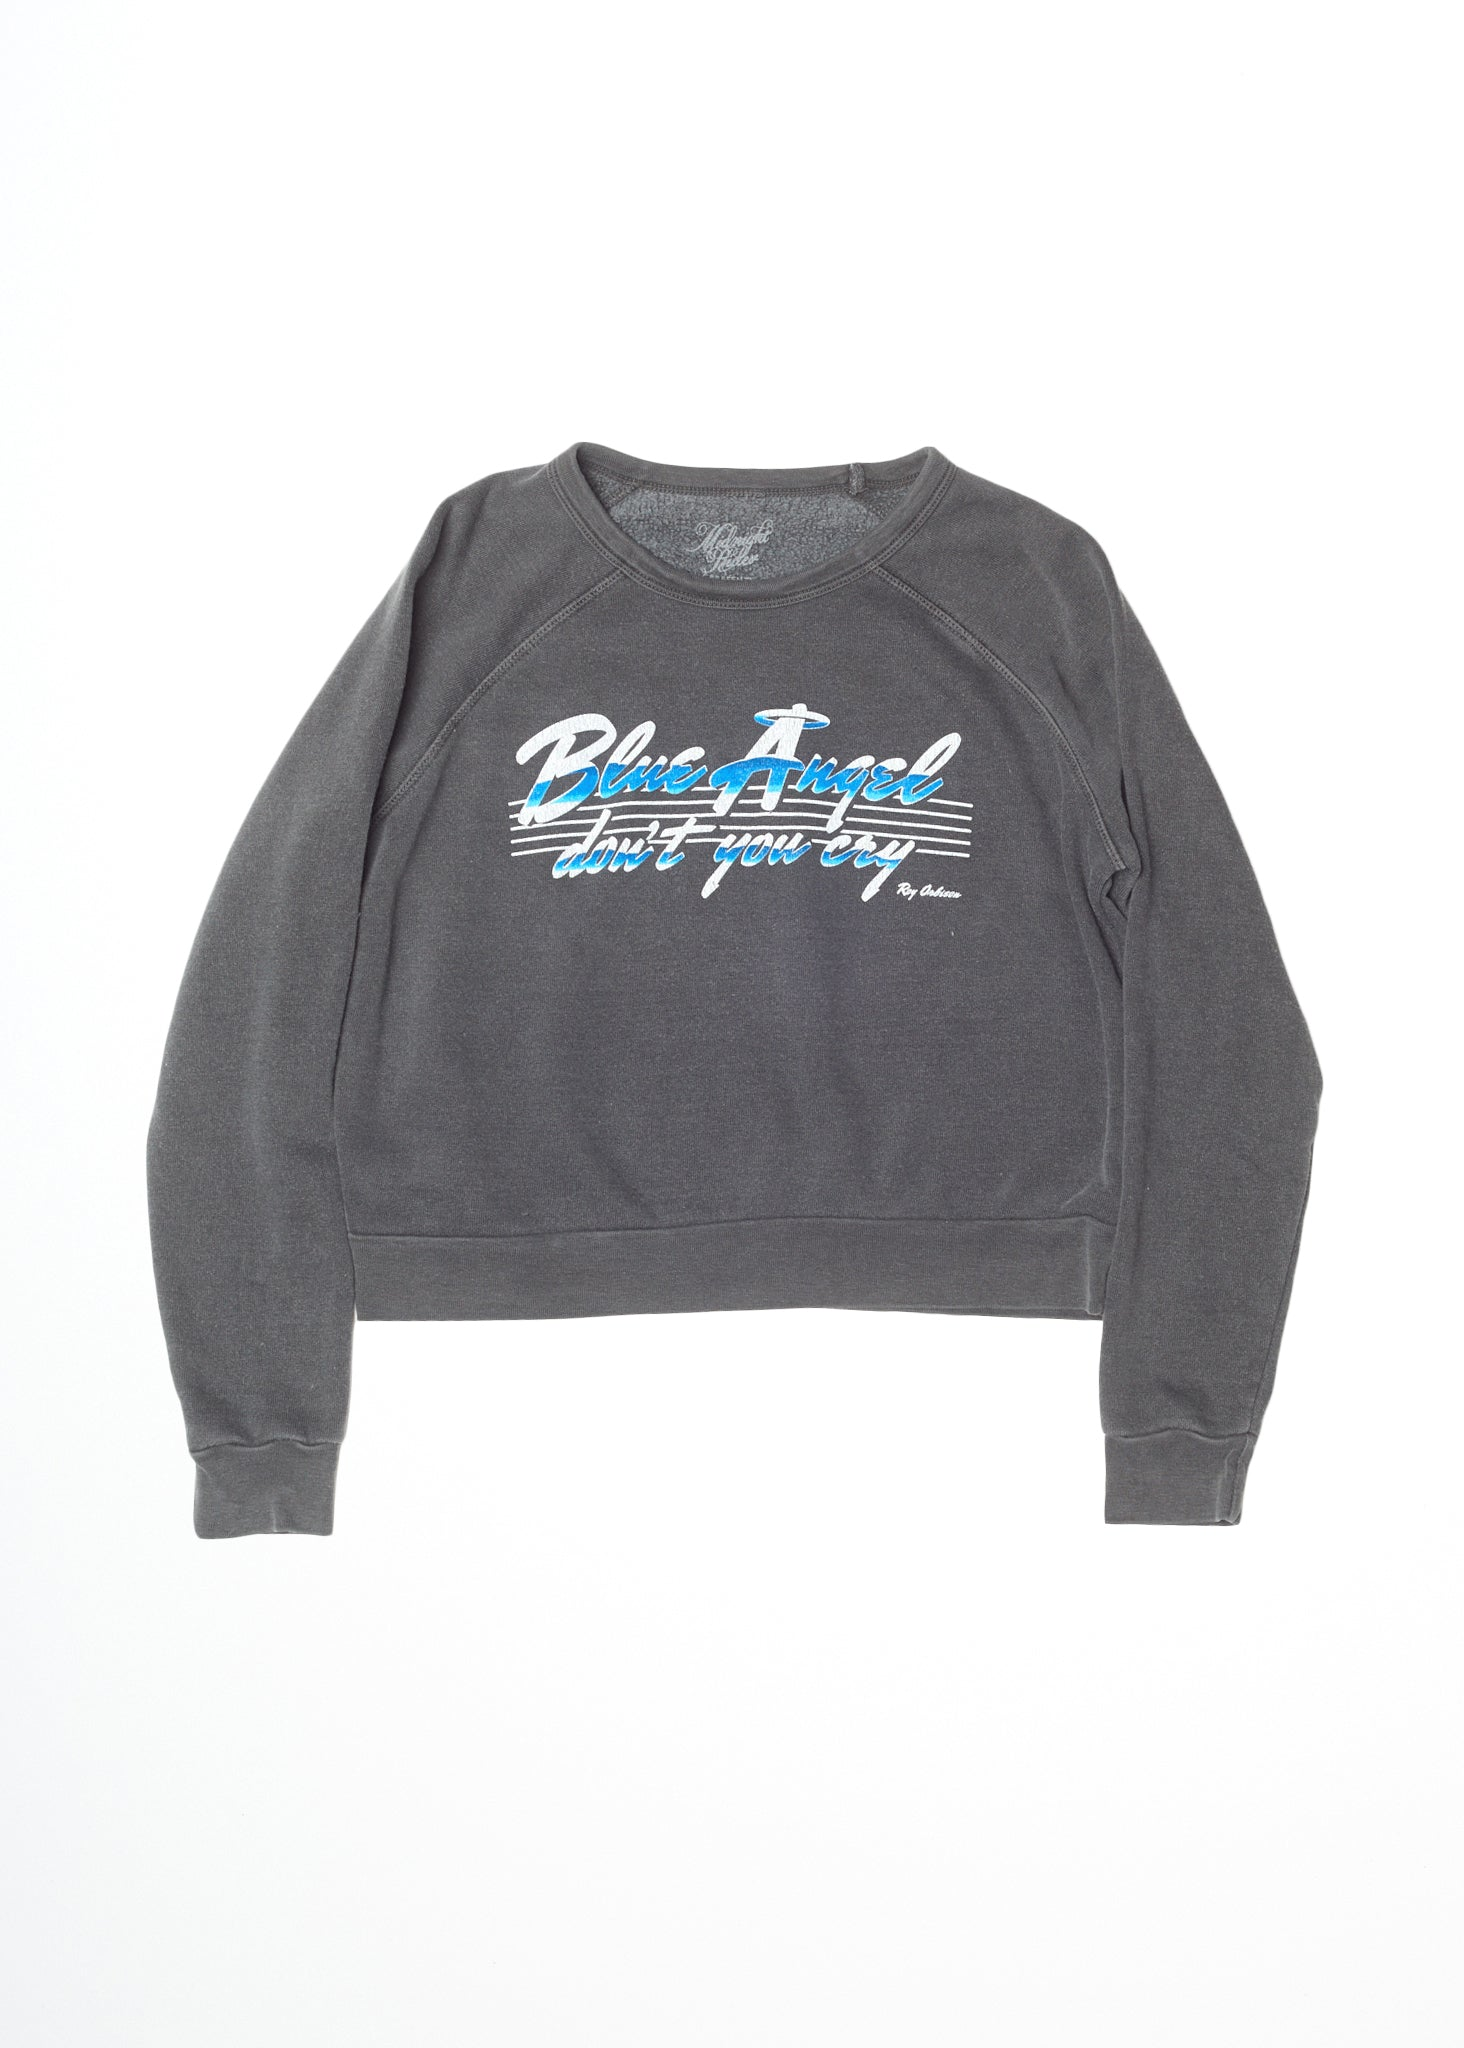 Blue Angel Roy Orbison Cropped Sweatshirt - Women's Sweatshirt - Midnight Rider